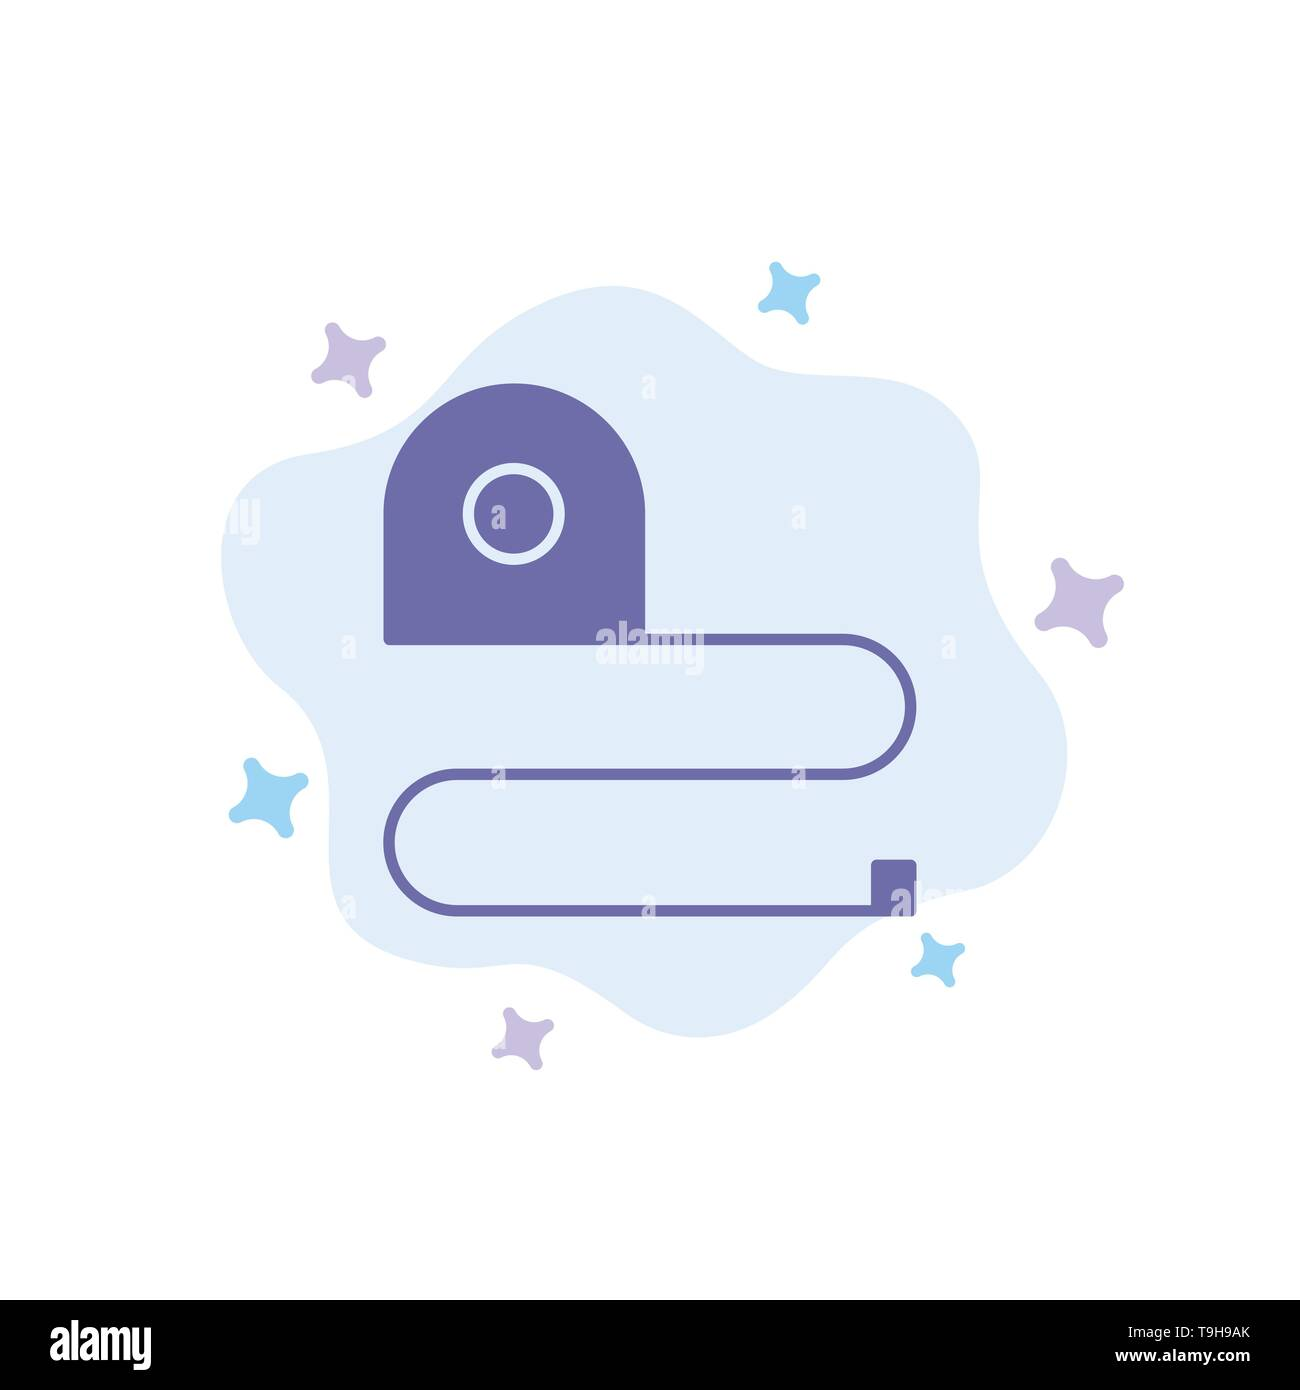 Construction, Measuring, Scale, Tape Blue Icon on Abstract Cloud Background - Stock Image